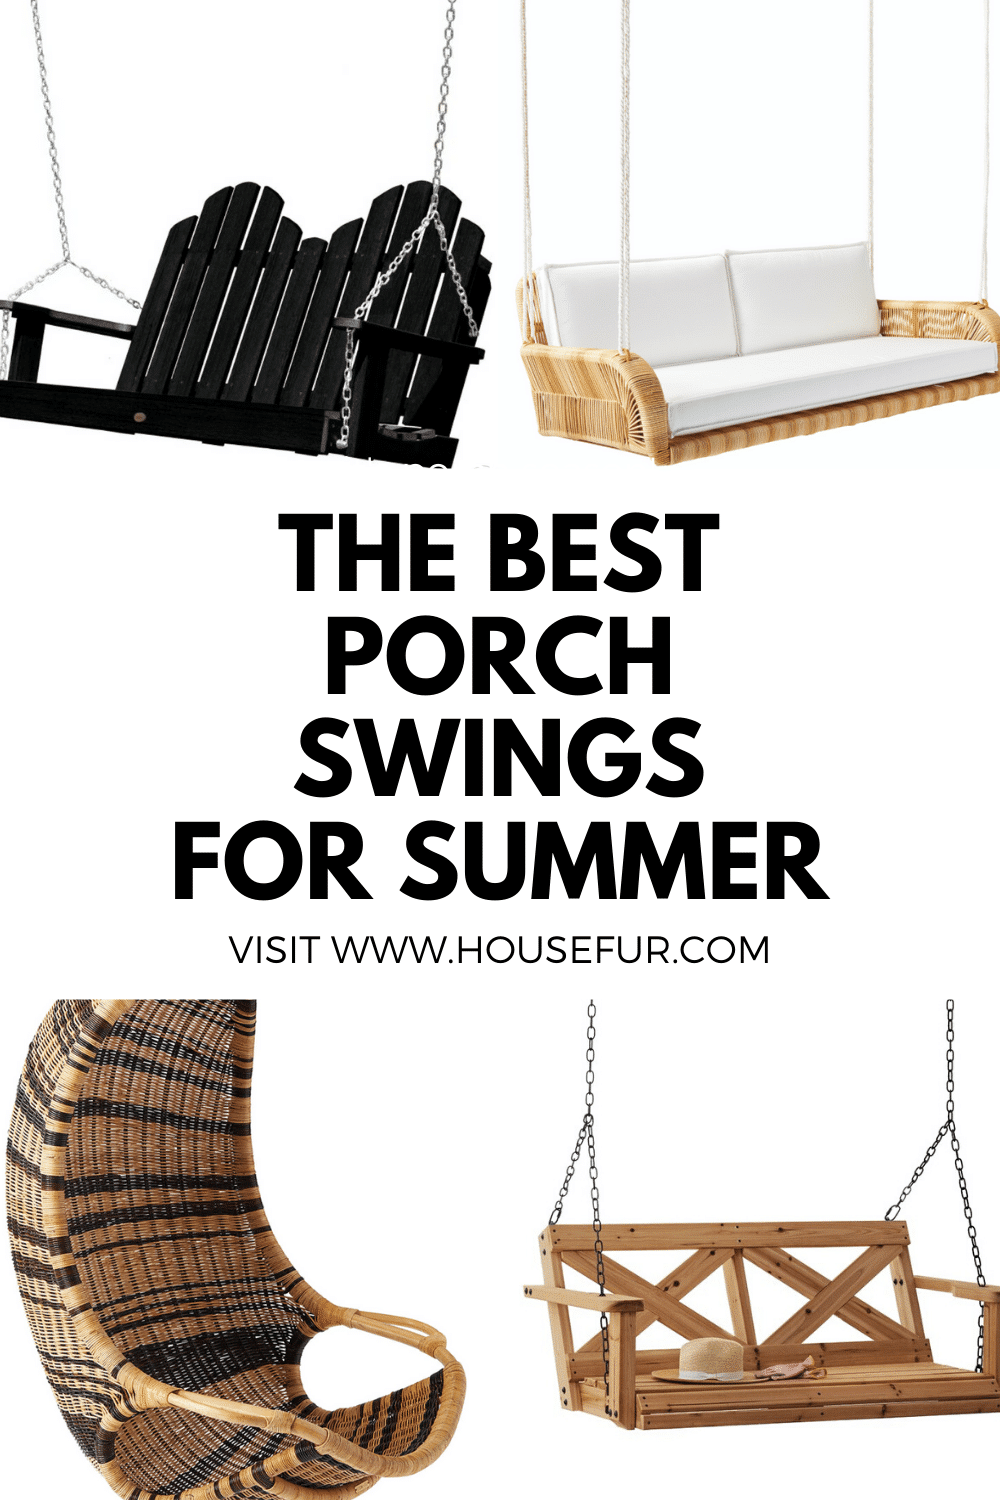 Porch Swings for Summer 2020